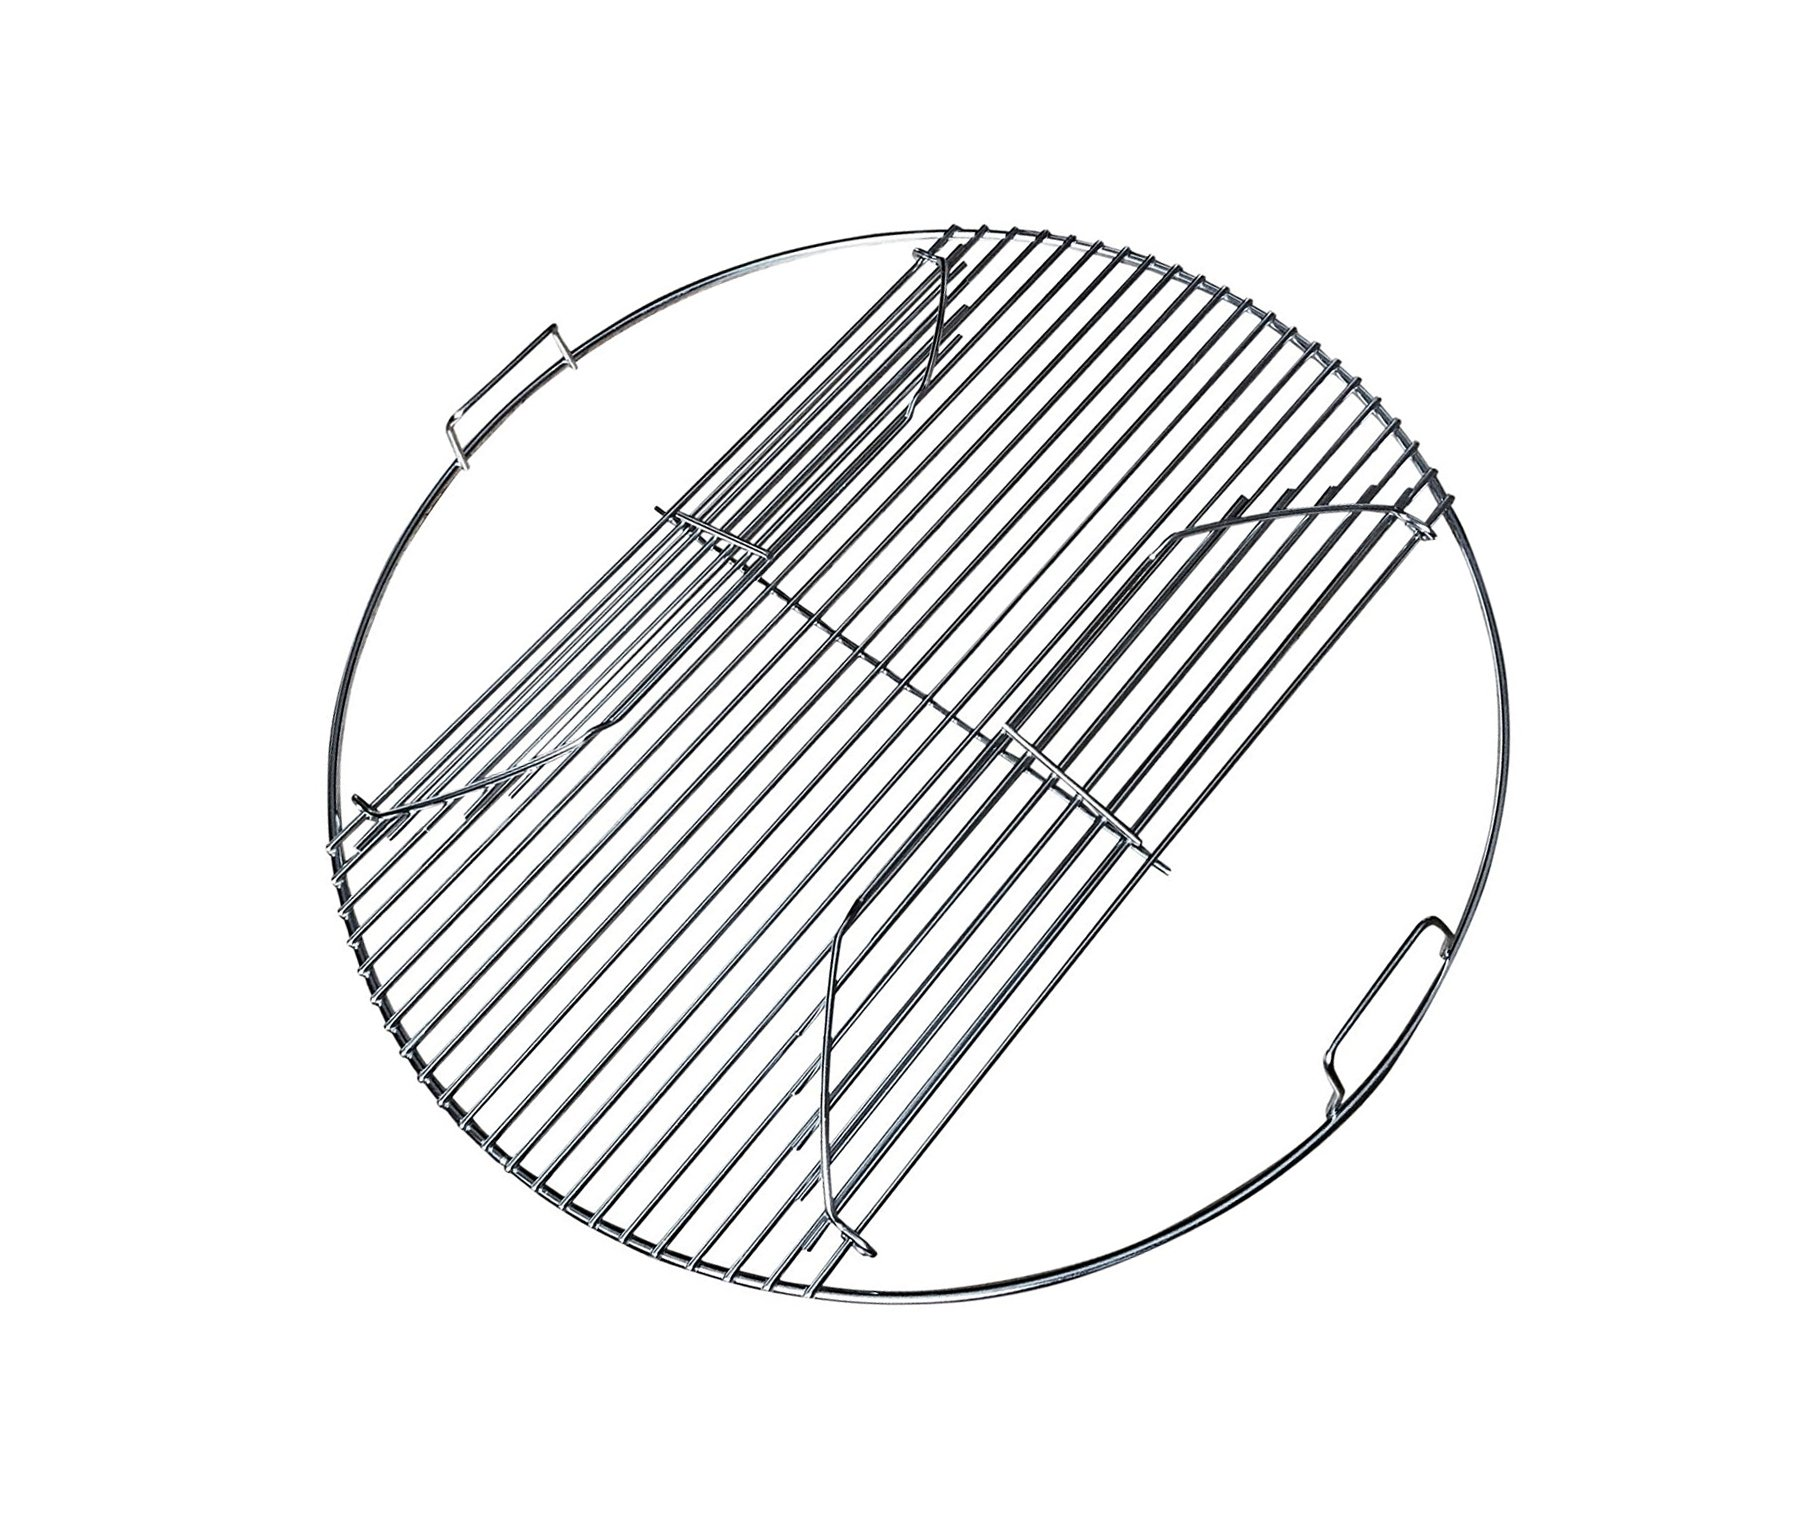 soldbbq Grid Compatible with 22.5 Inch Weber Charcoal Grills